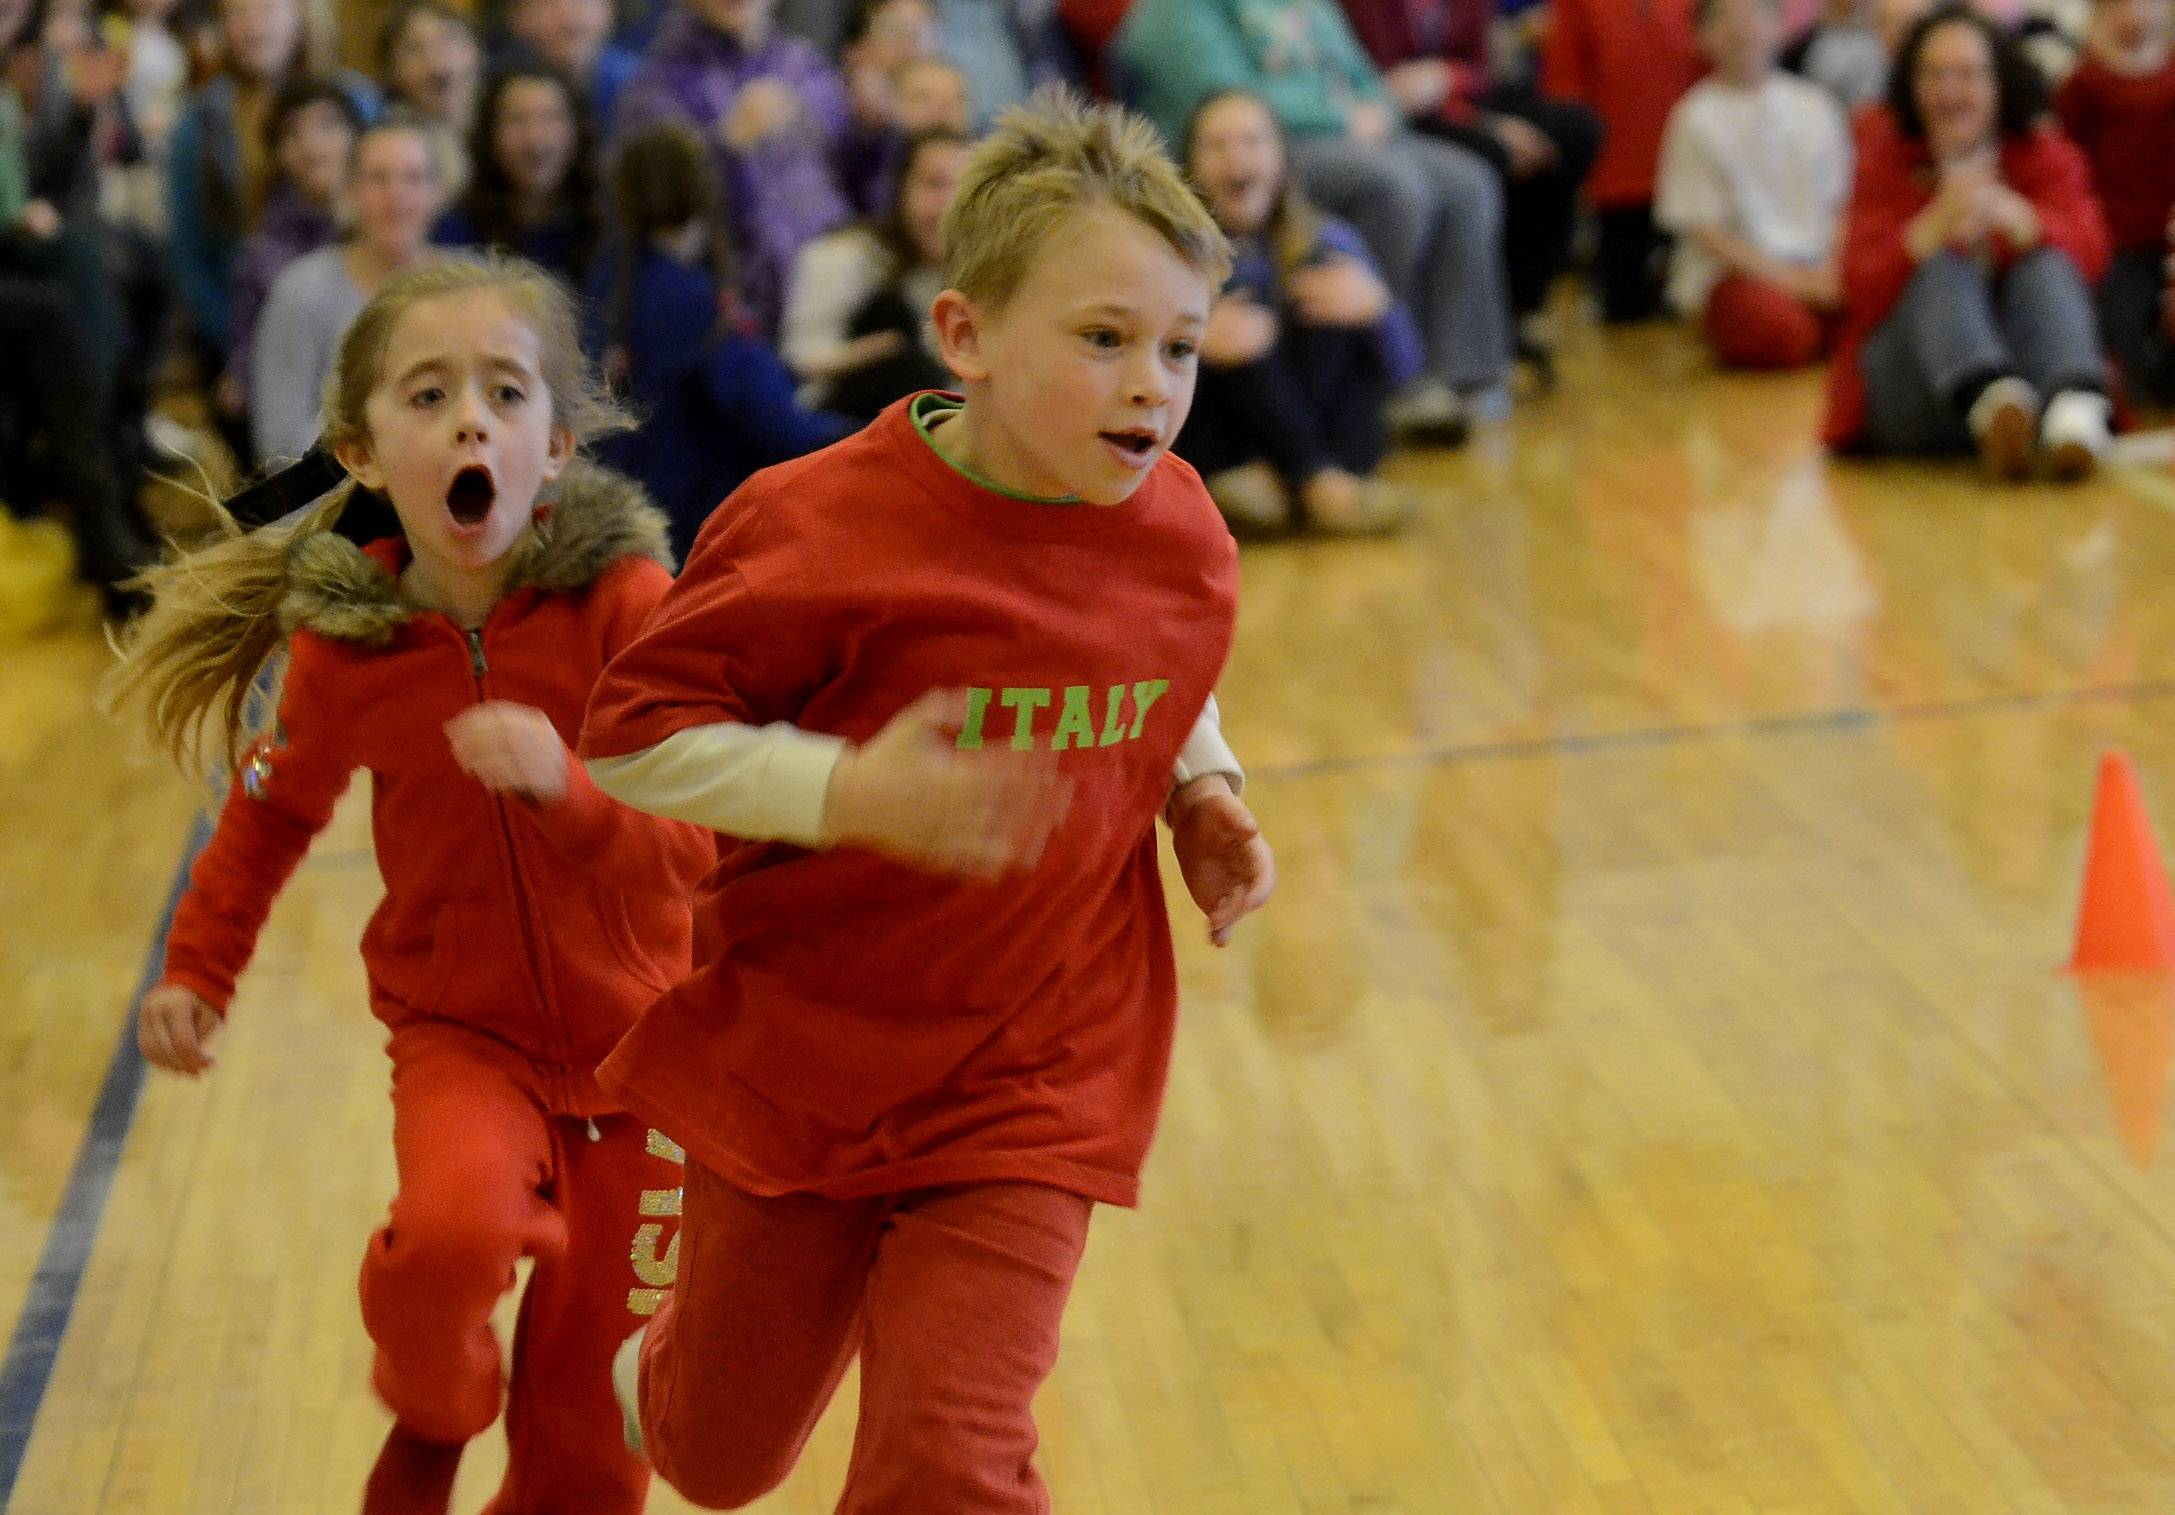 First-graders Briana Butler and Gavin Stanley race around the speed skating track during an Olympic event Friday at St. Francis de Sales Catholic School in Lake Zurich.